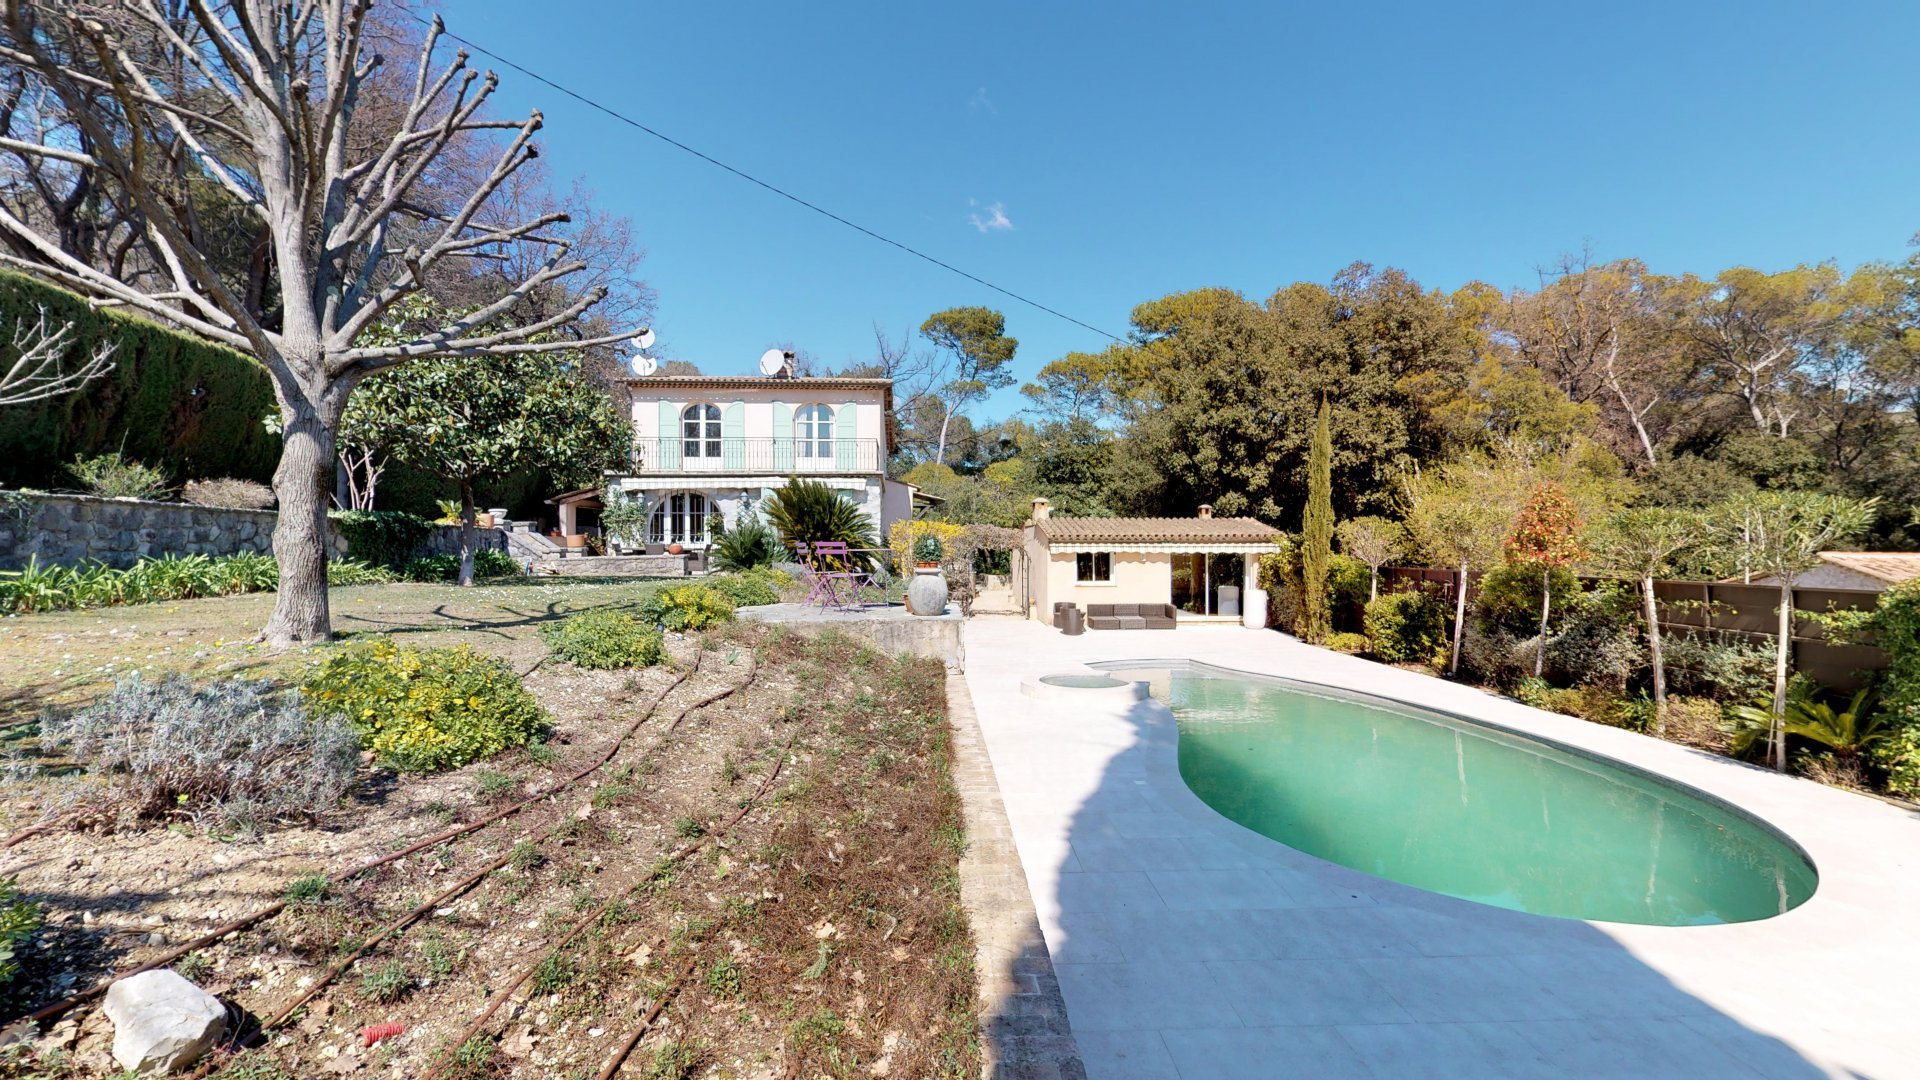 Walking distance to the center of the village in Mougins